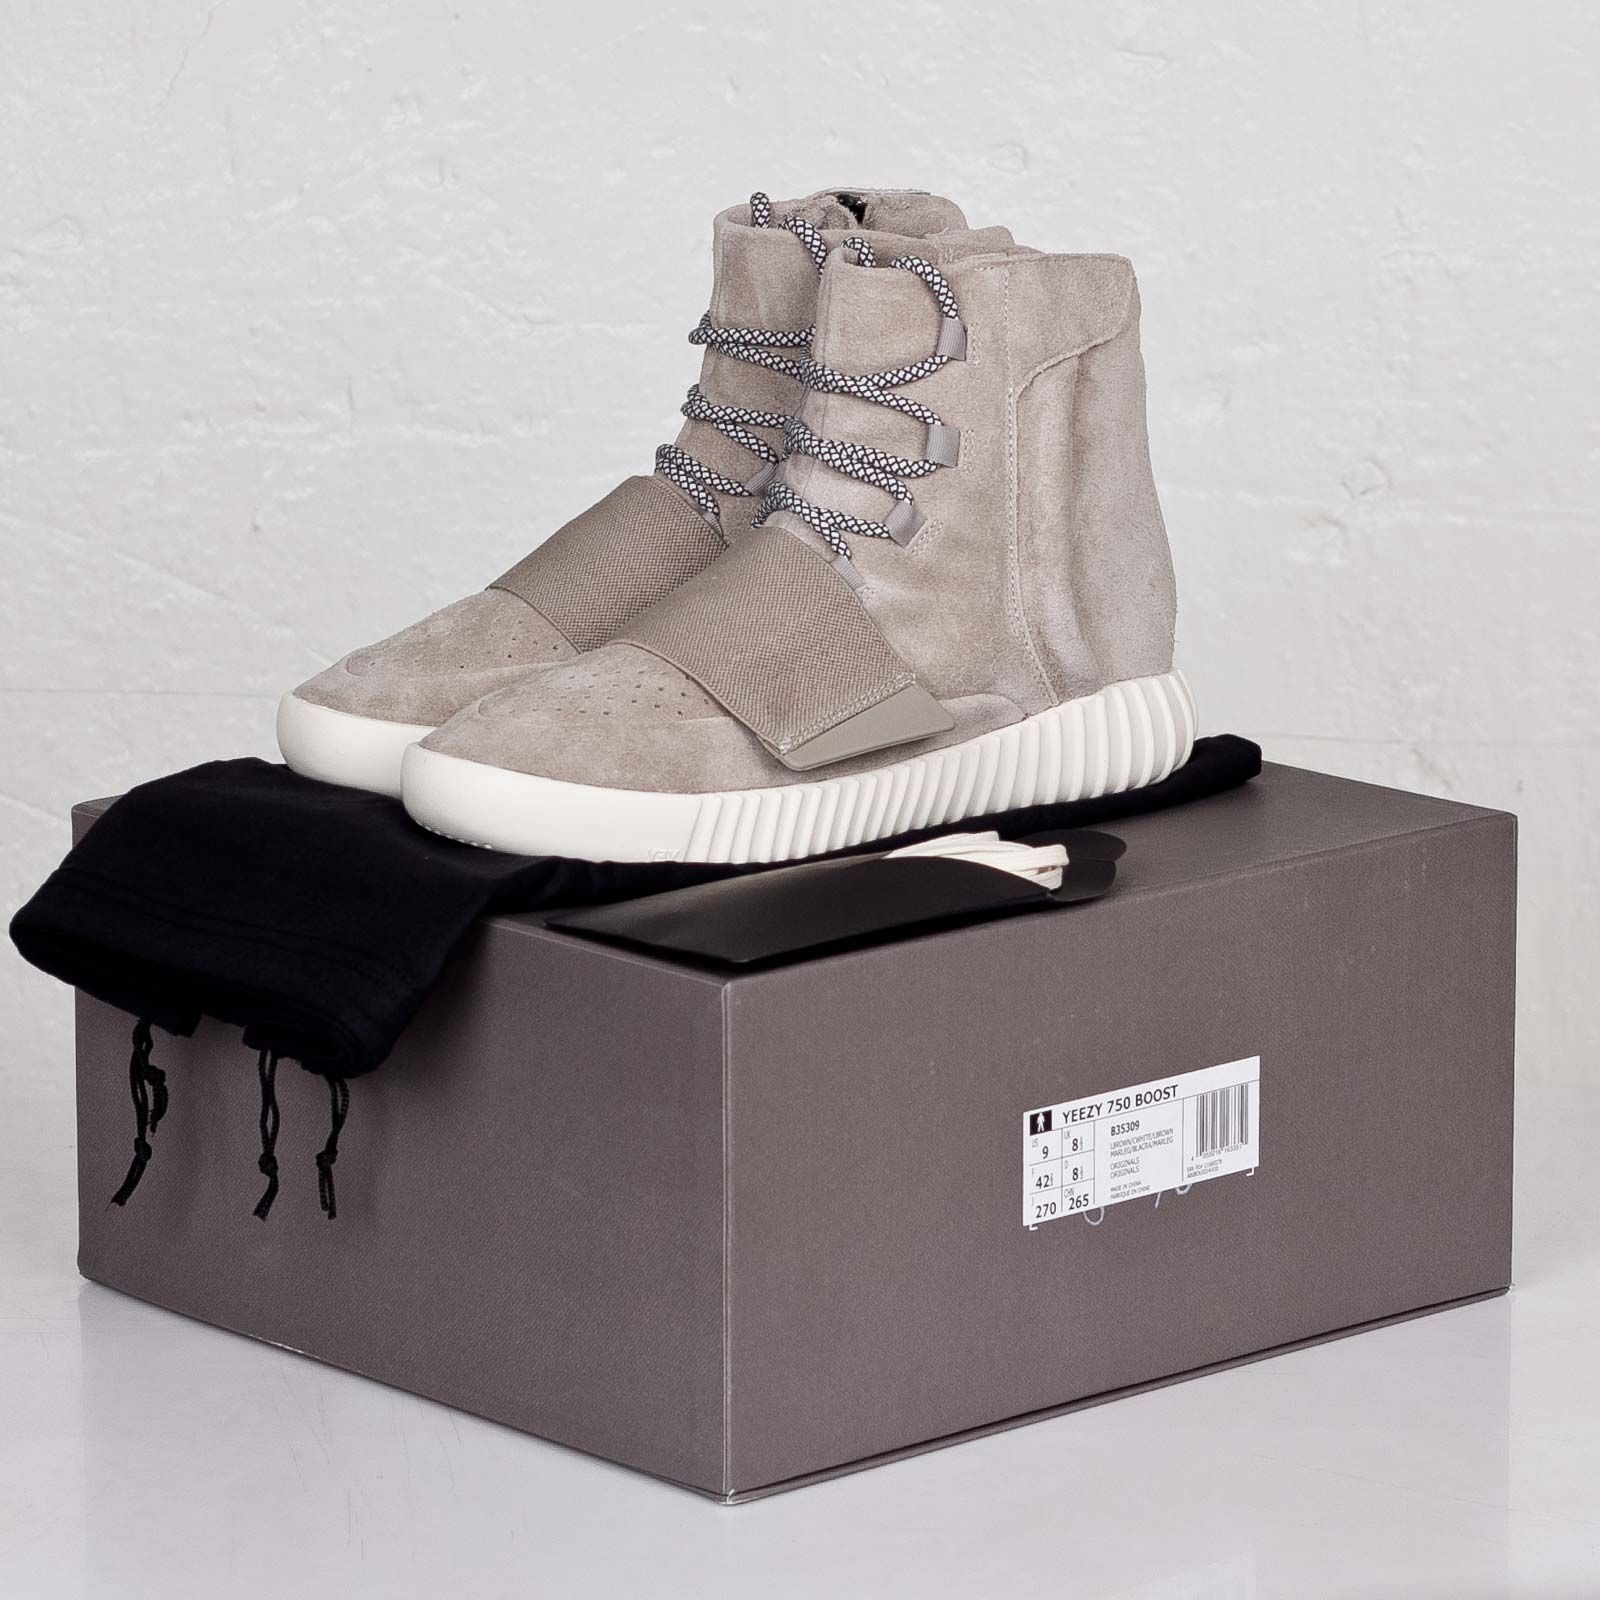 adidas yeezy boost 750 size 11 adidas r1 primeknit blue and pink